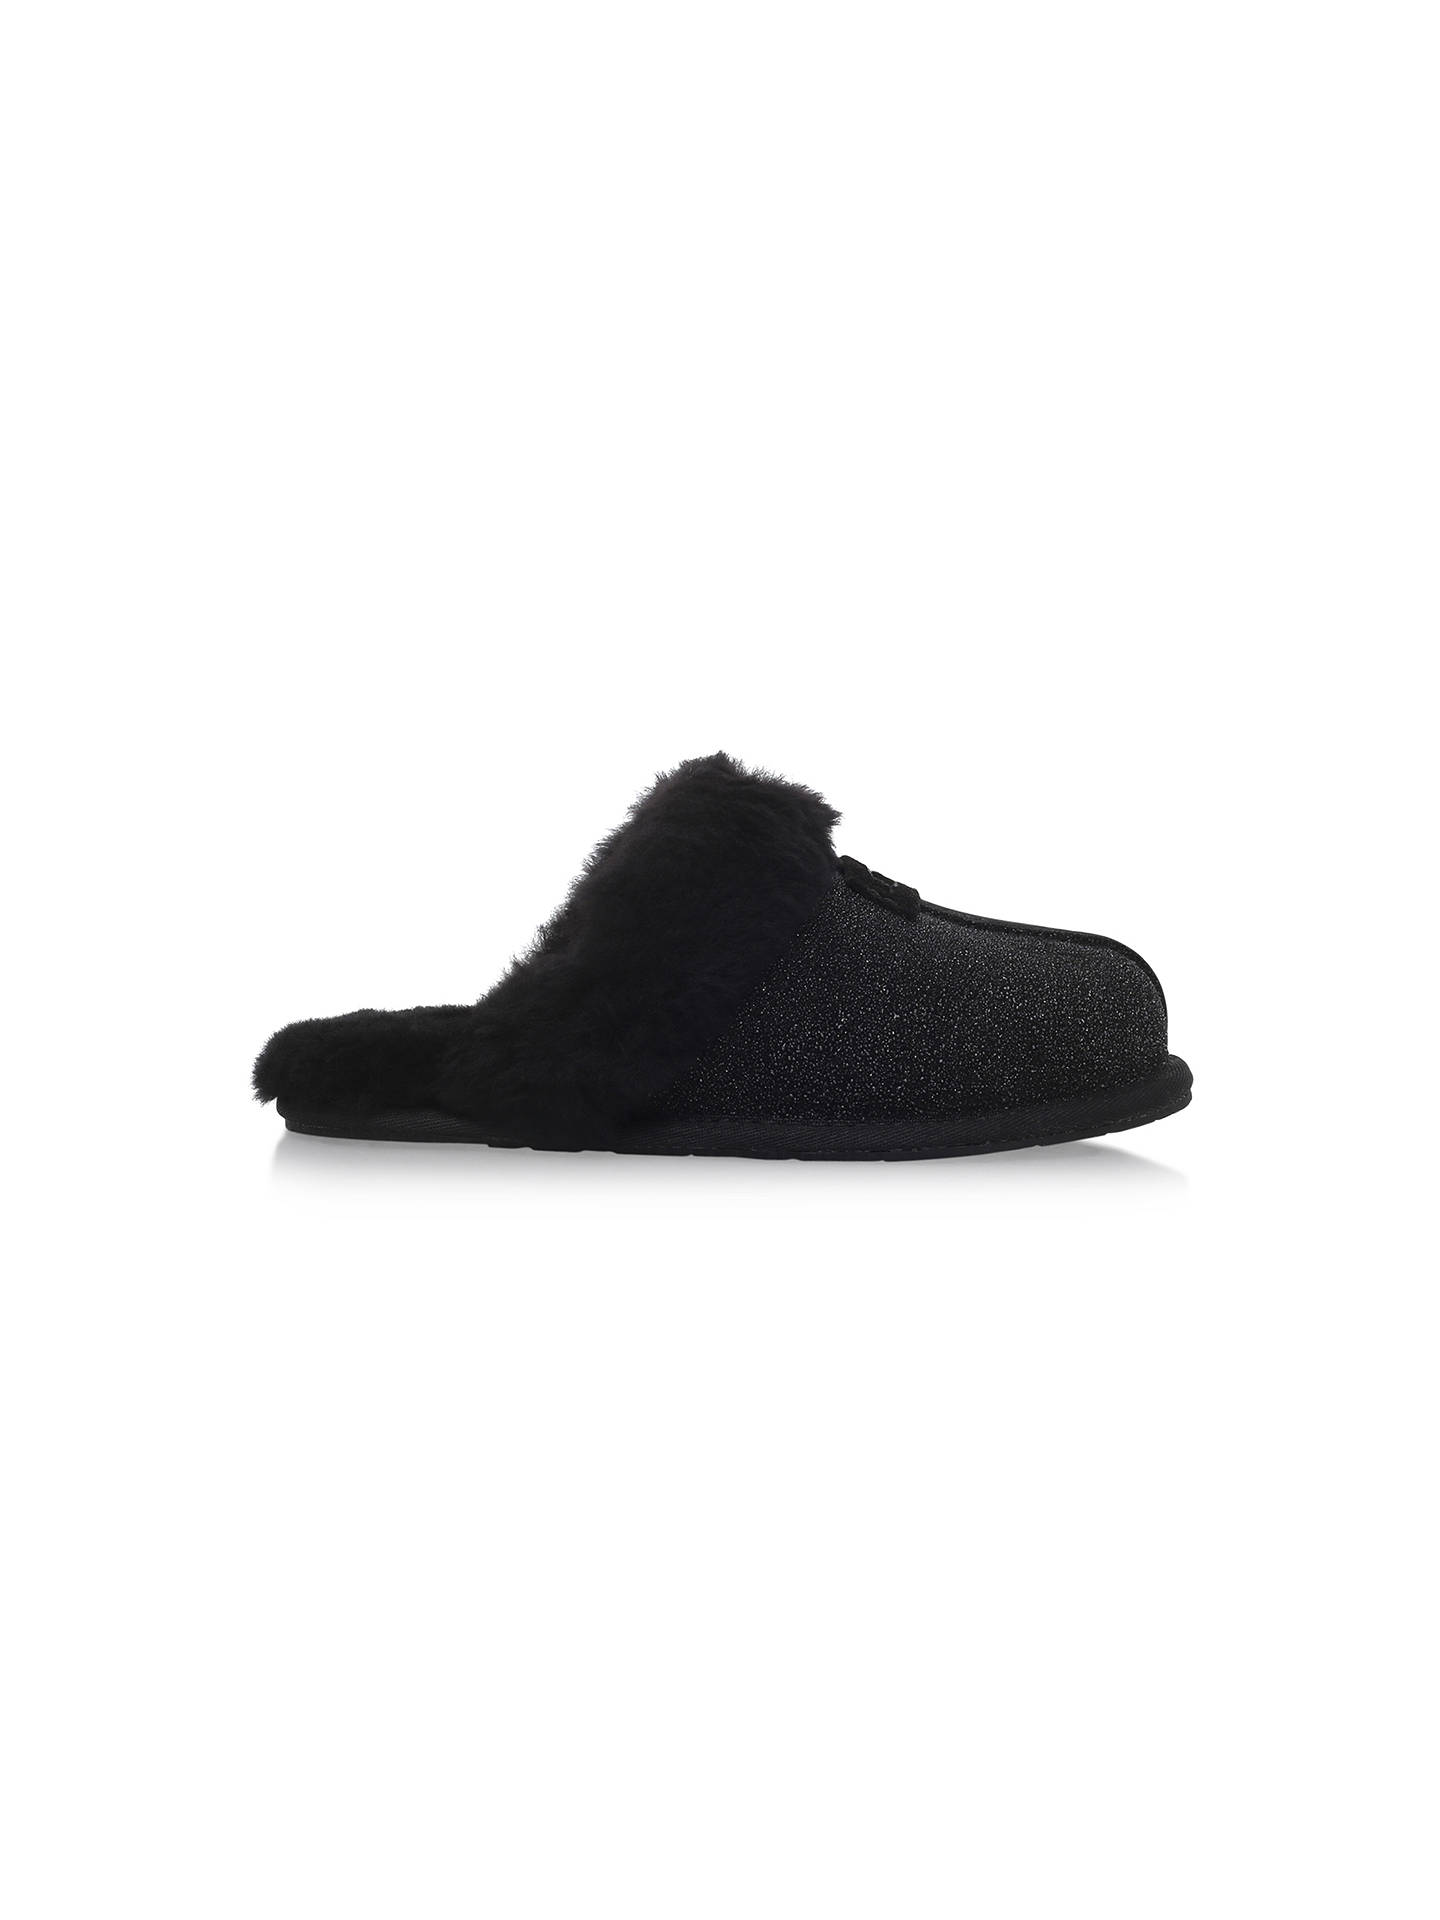 936274e6ba5 UGG Scuffette II Serein Slippers at John Lewis & Partners